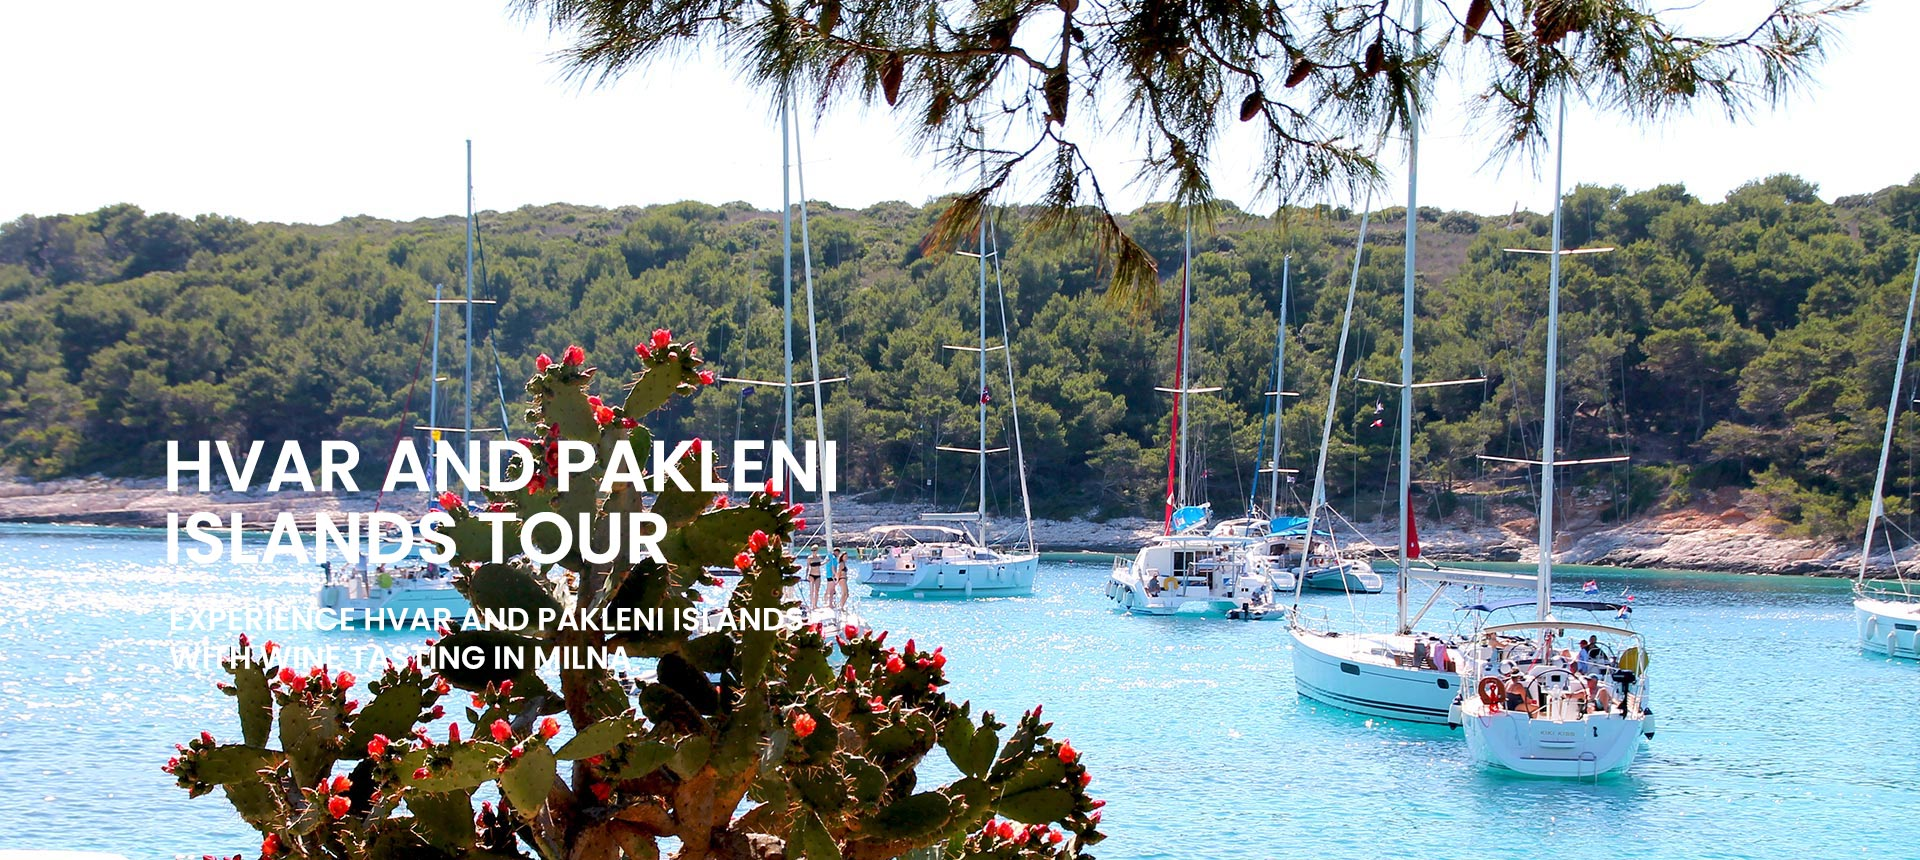 Private tour to Hvar and Pakleni islands